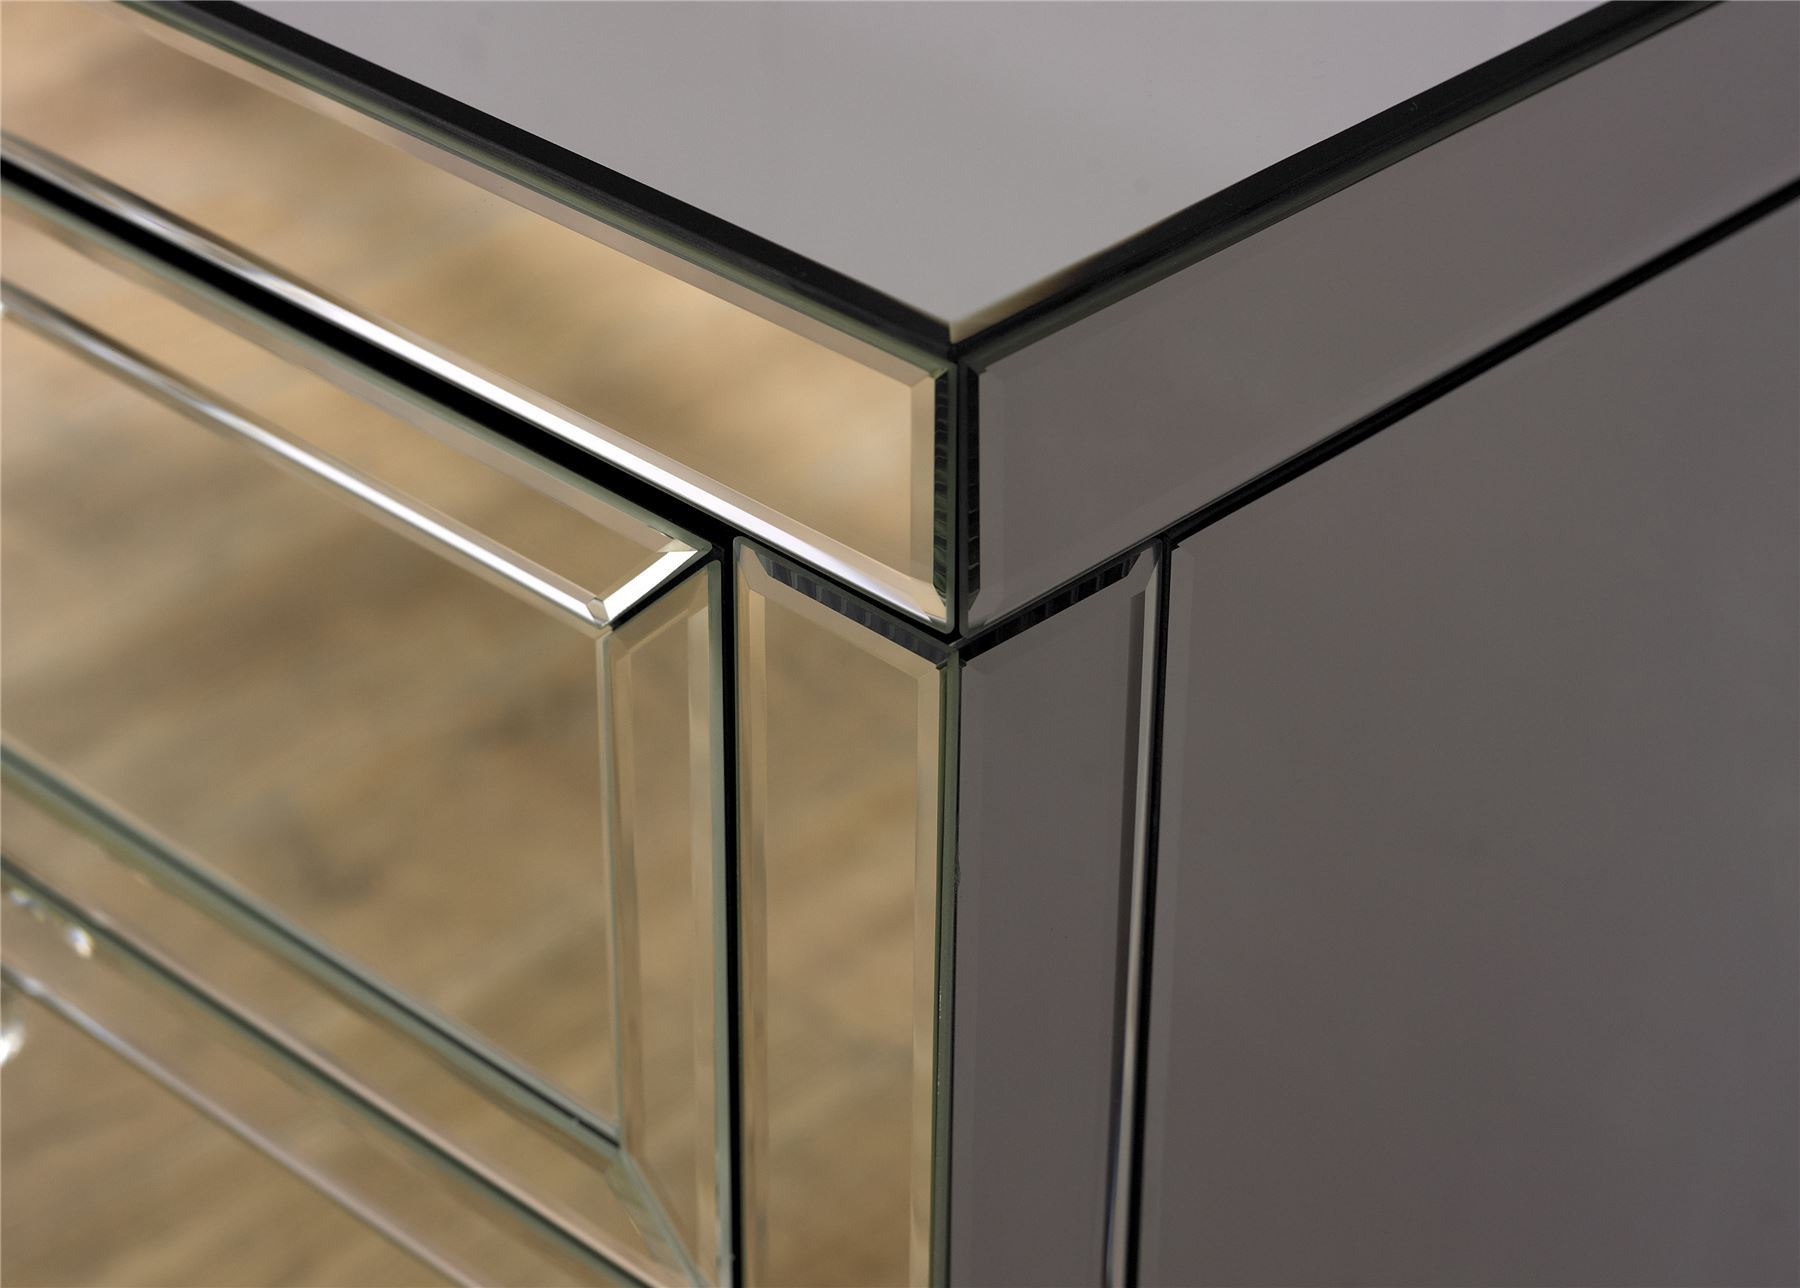 Birlea Valencia Mirrored 3 Drawer Bevelled Mirror Chest Bedside Cabinet